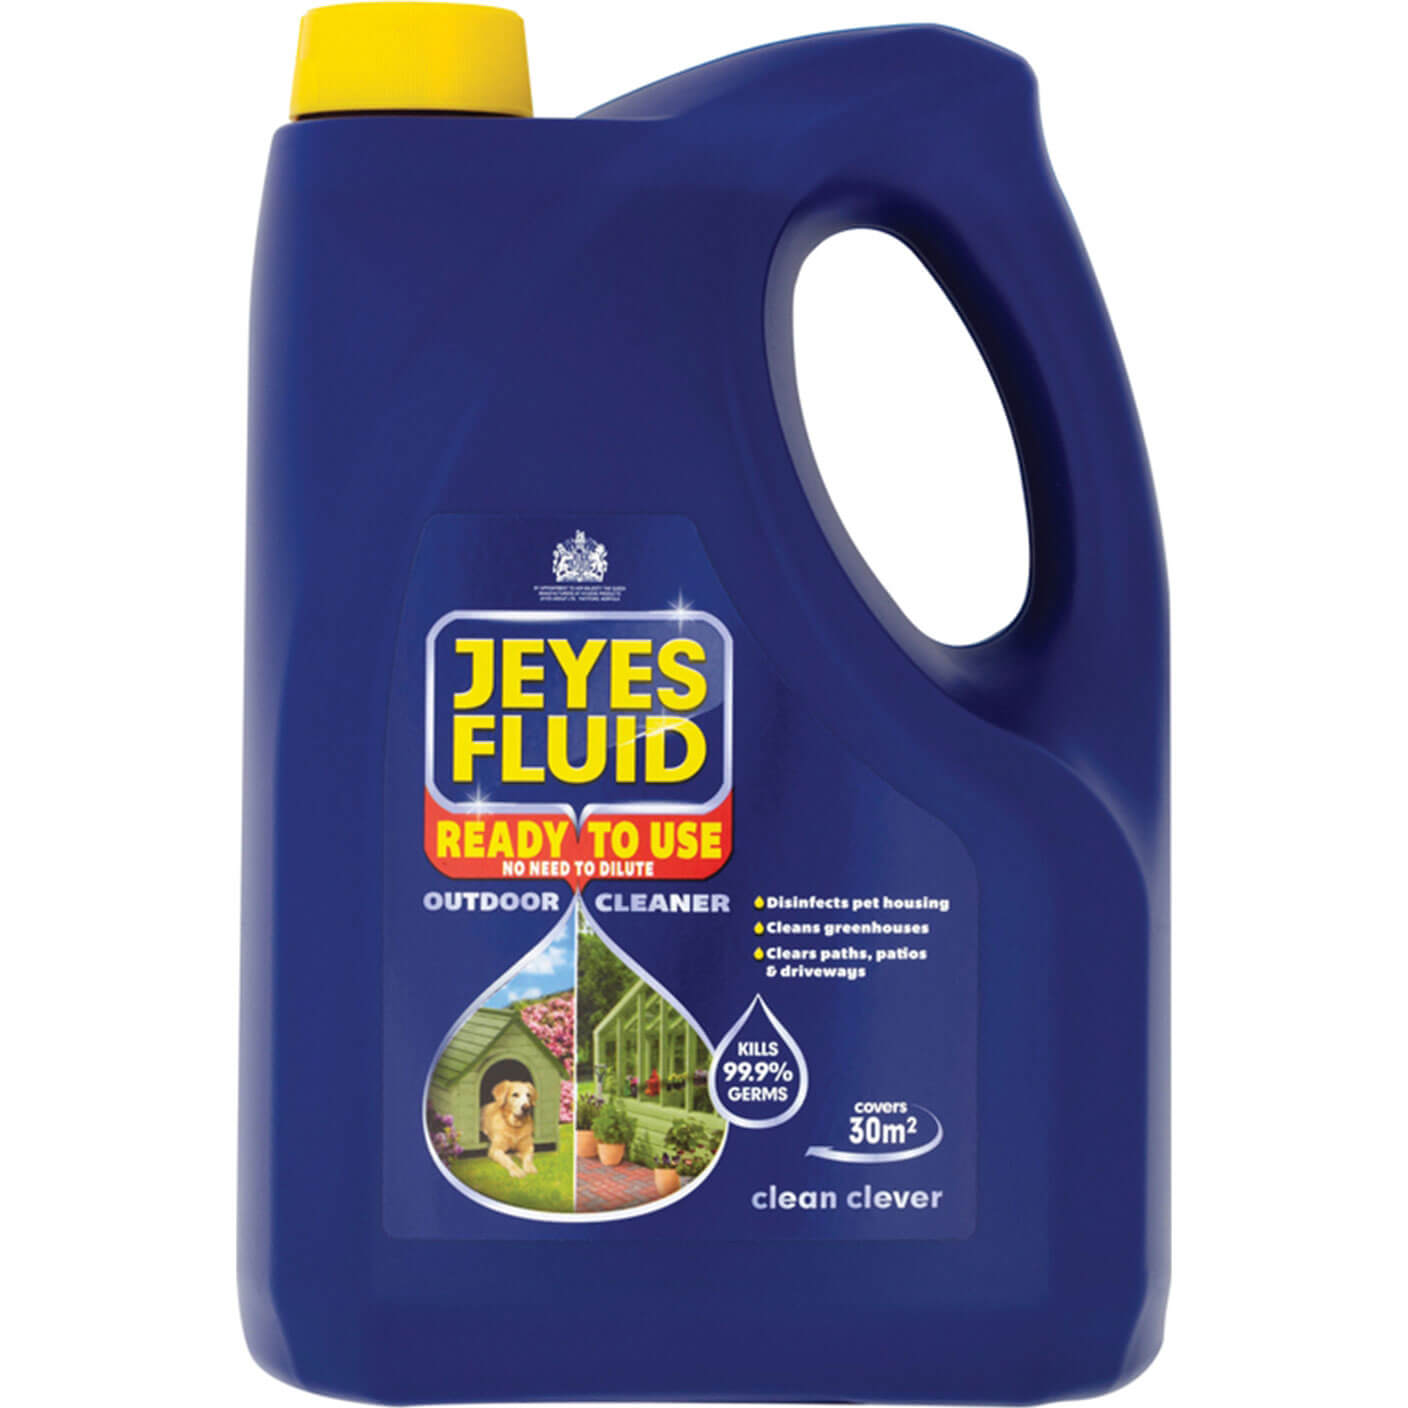 Image of Jeyes Multi Purpose Outdoor Cleaner Disinfectant Fluid 4l